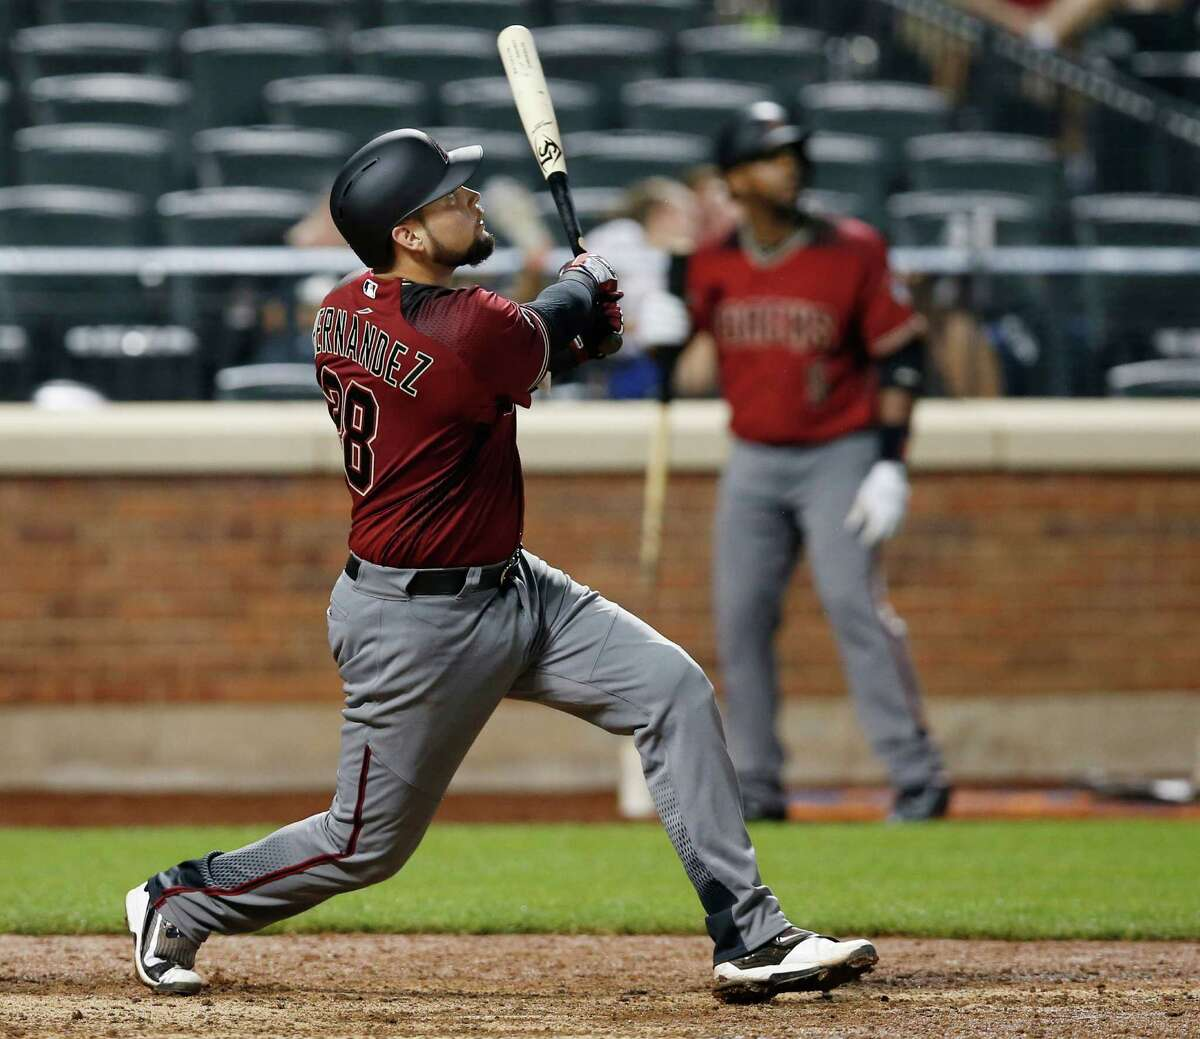 Arizona Diamondbacks Oscar Hernandez watches his 12th-inning solo home run off New York Mets relief pitcher Jerry Blevins in a baseball game, Wednesday, Aug. 10, 2016, in New York. (AP Photo/Kathy Willens) ORG XMIT: NYM122